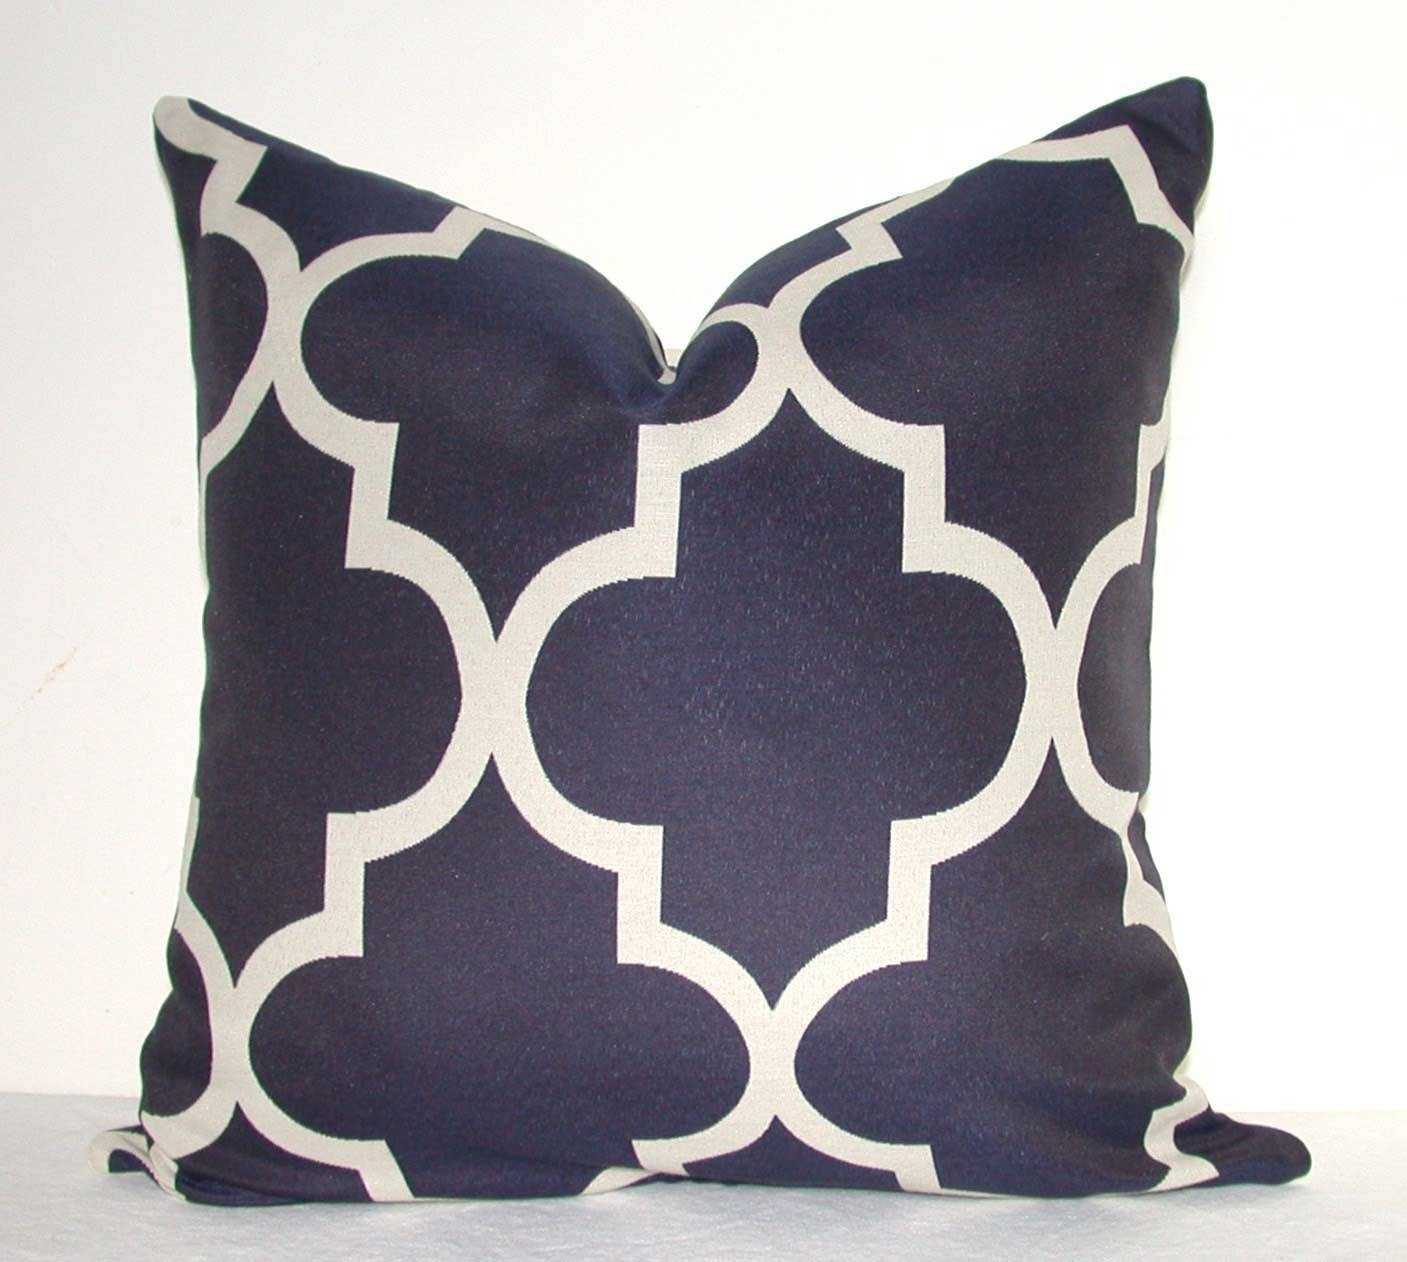 Decor: Oversized Throw Pillows | Throw Pillow Sets | Purple Throw Inside Oversized Sofa Pillows (View 9 of 30)